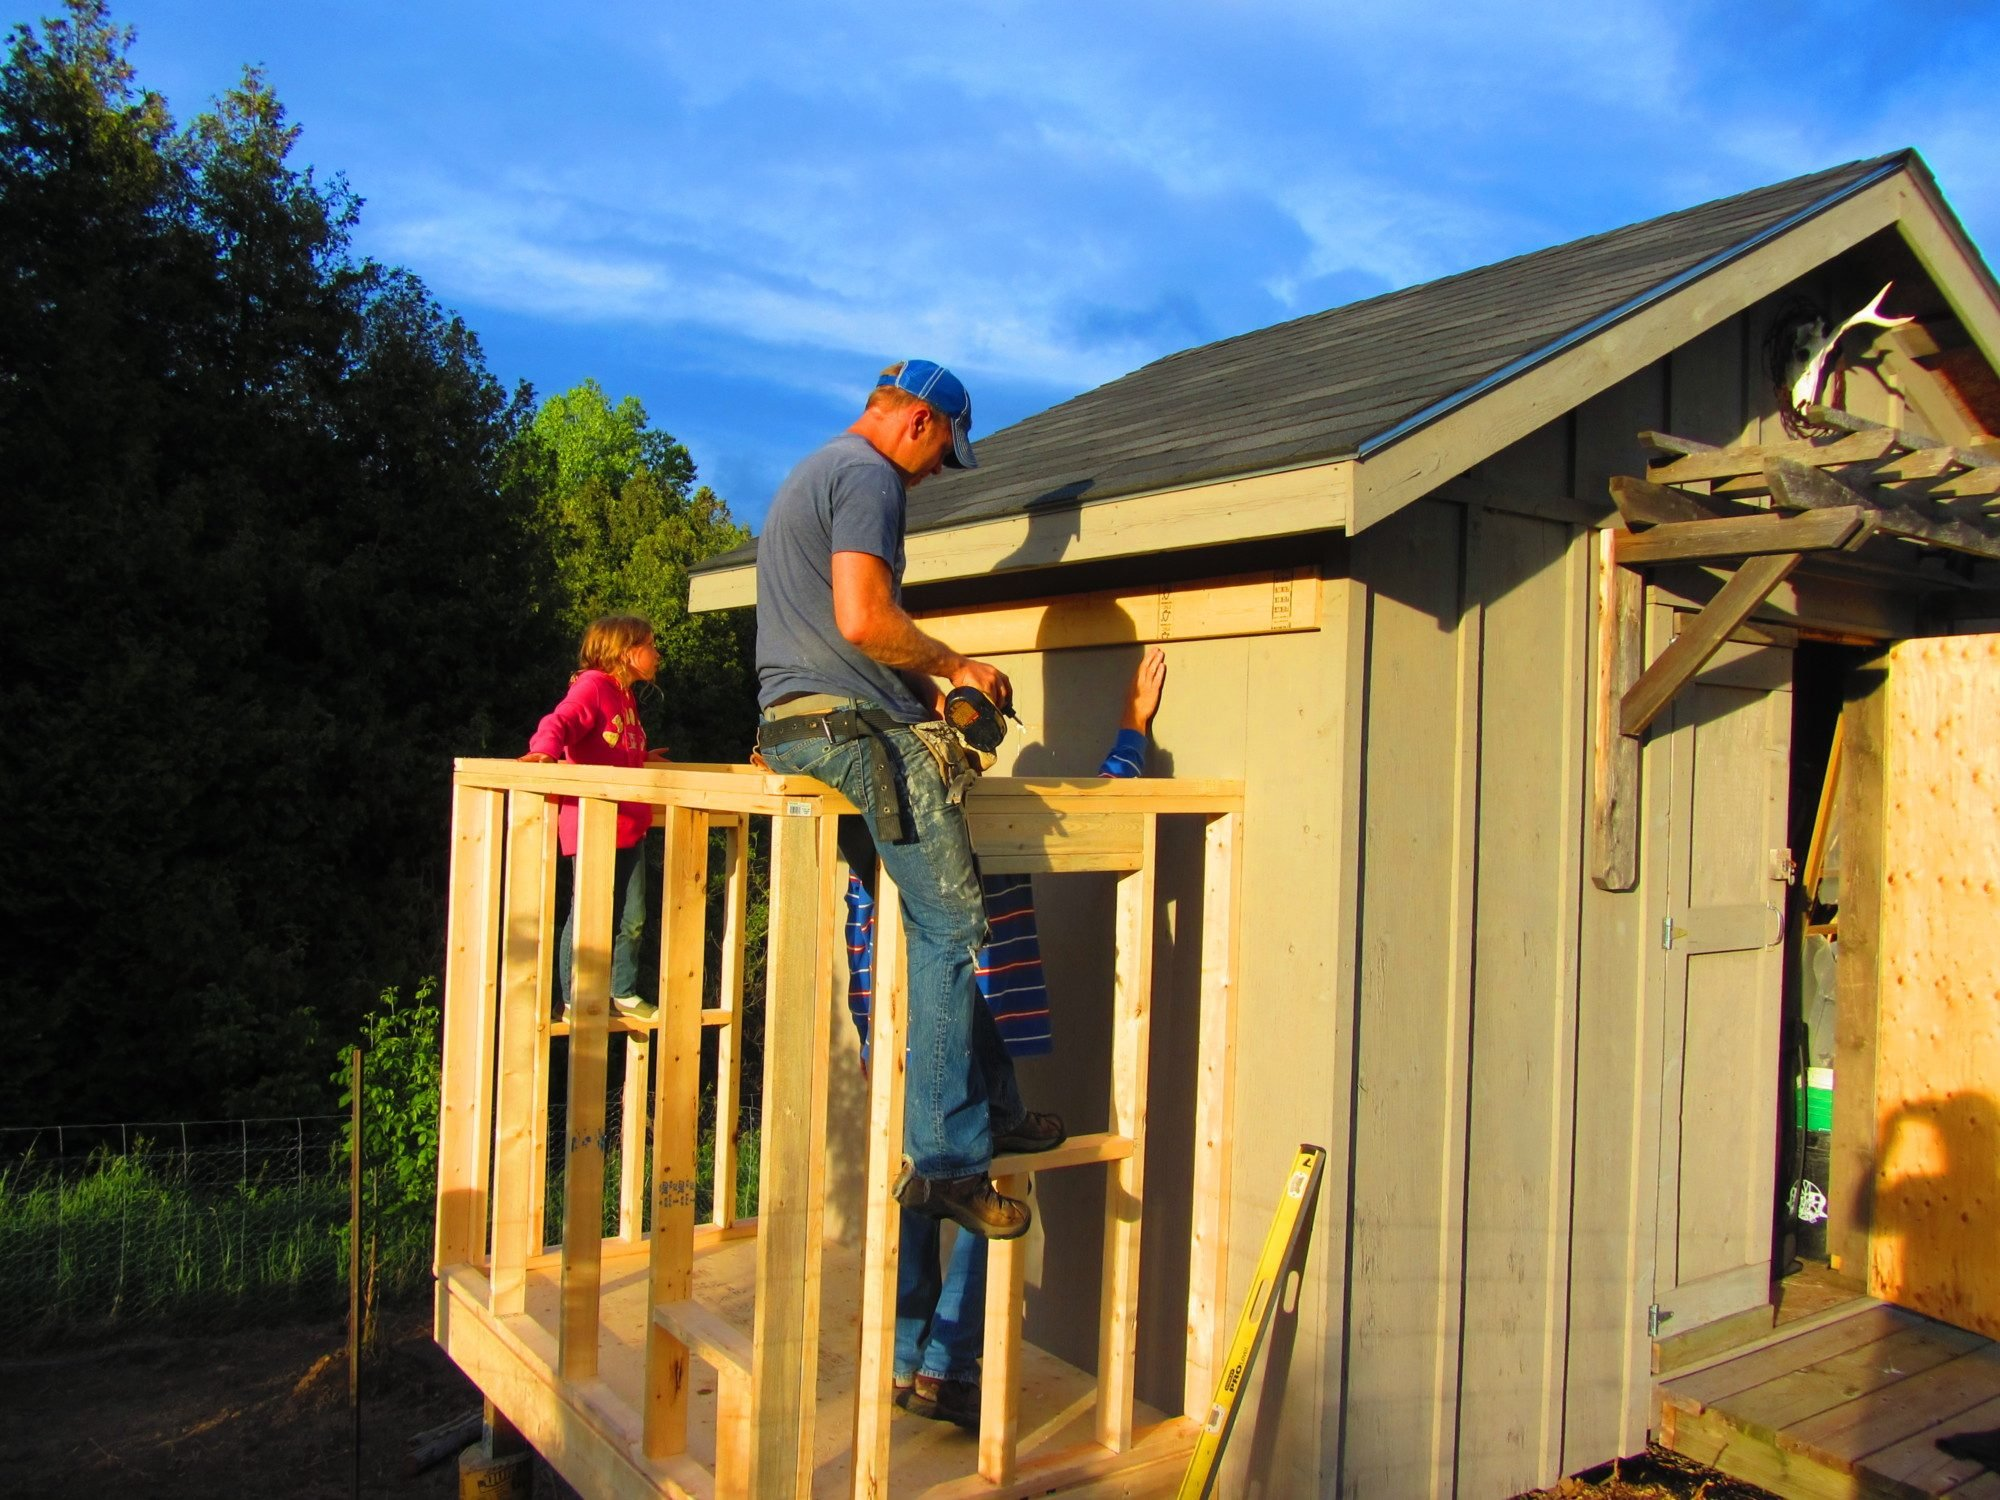 Shed addition backyard chickens community Shed addition